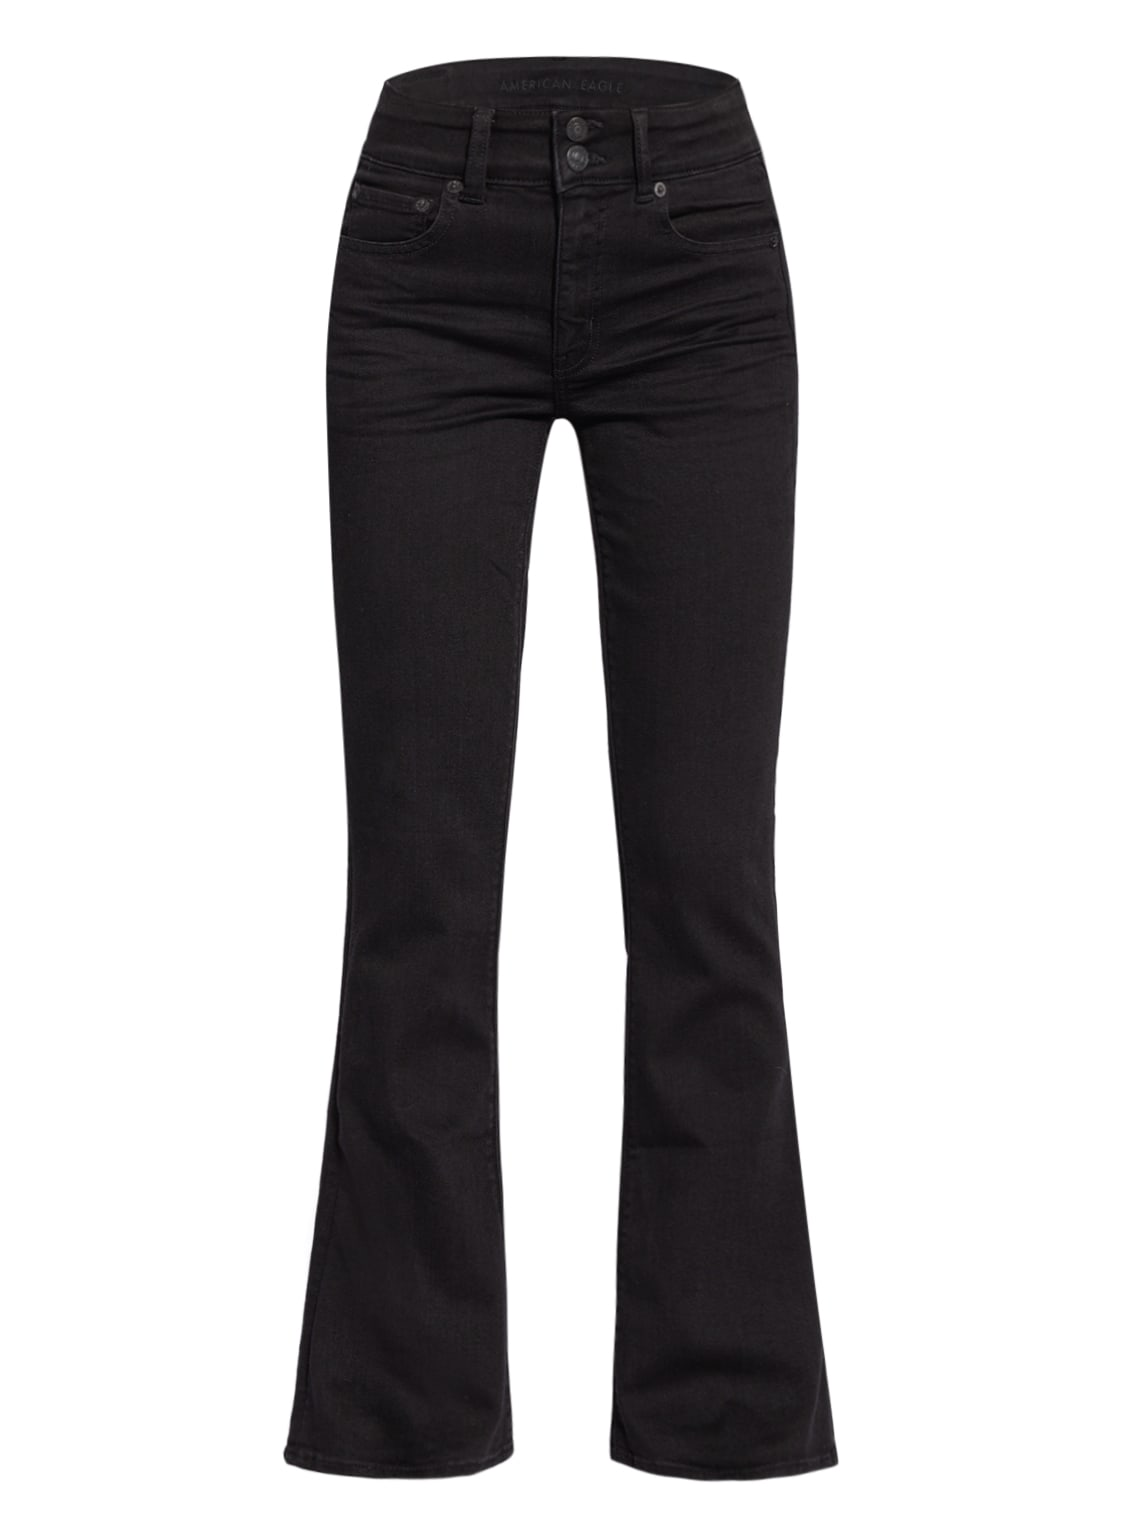 Image of American Eagle Bootcut Jeans schwarz